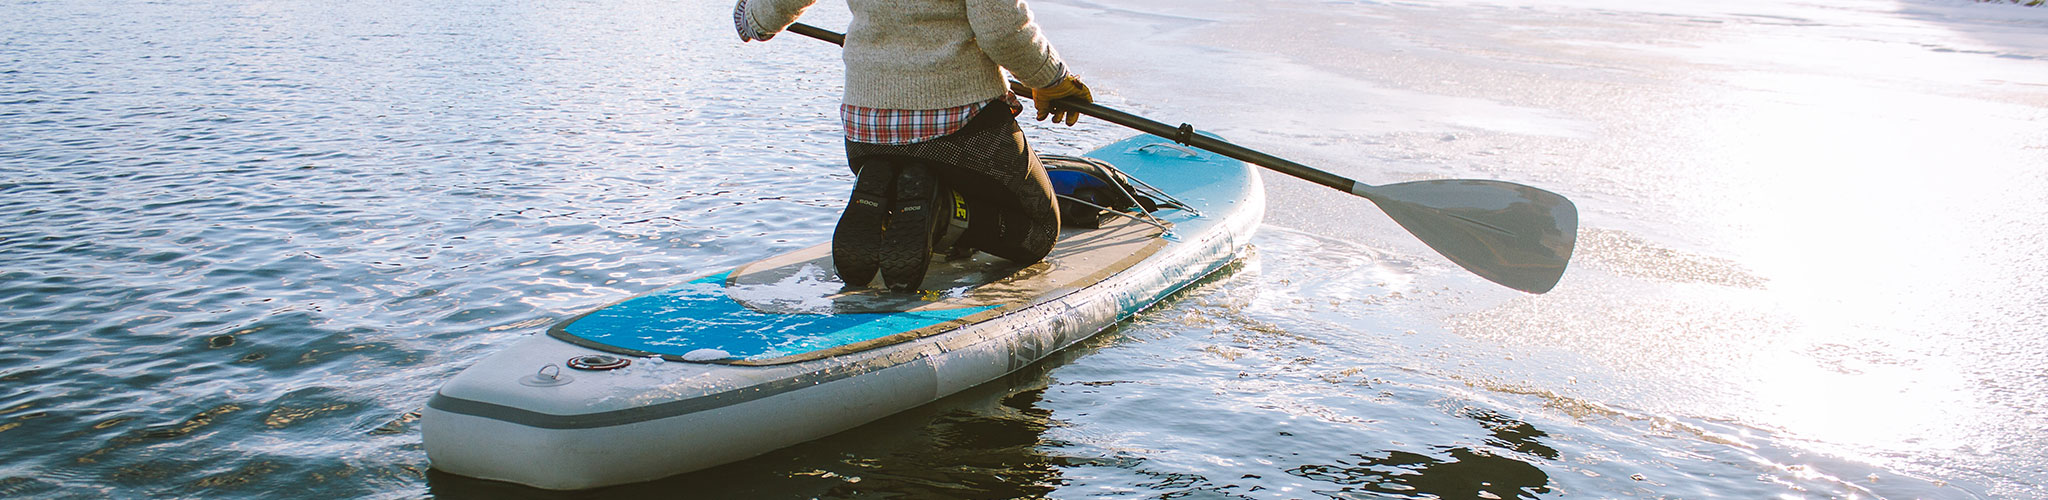 best-stand-up-paddleboard-paddle-sup-isup-2020